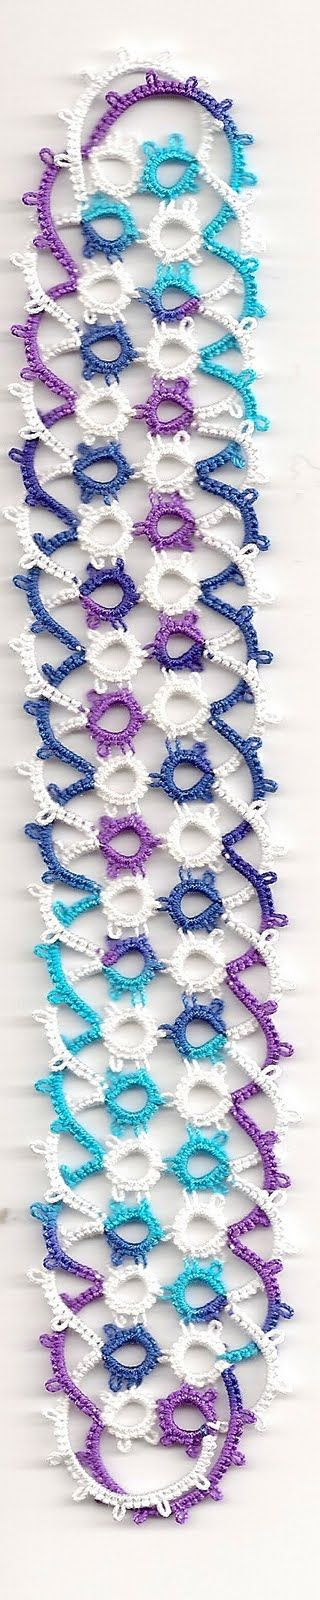 Simple Celtic Knot Bookmark using 4 shuttles Or 2 shuttles with balls. With free pdf pattern download. A Linda S Davies pattern.... *i*